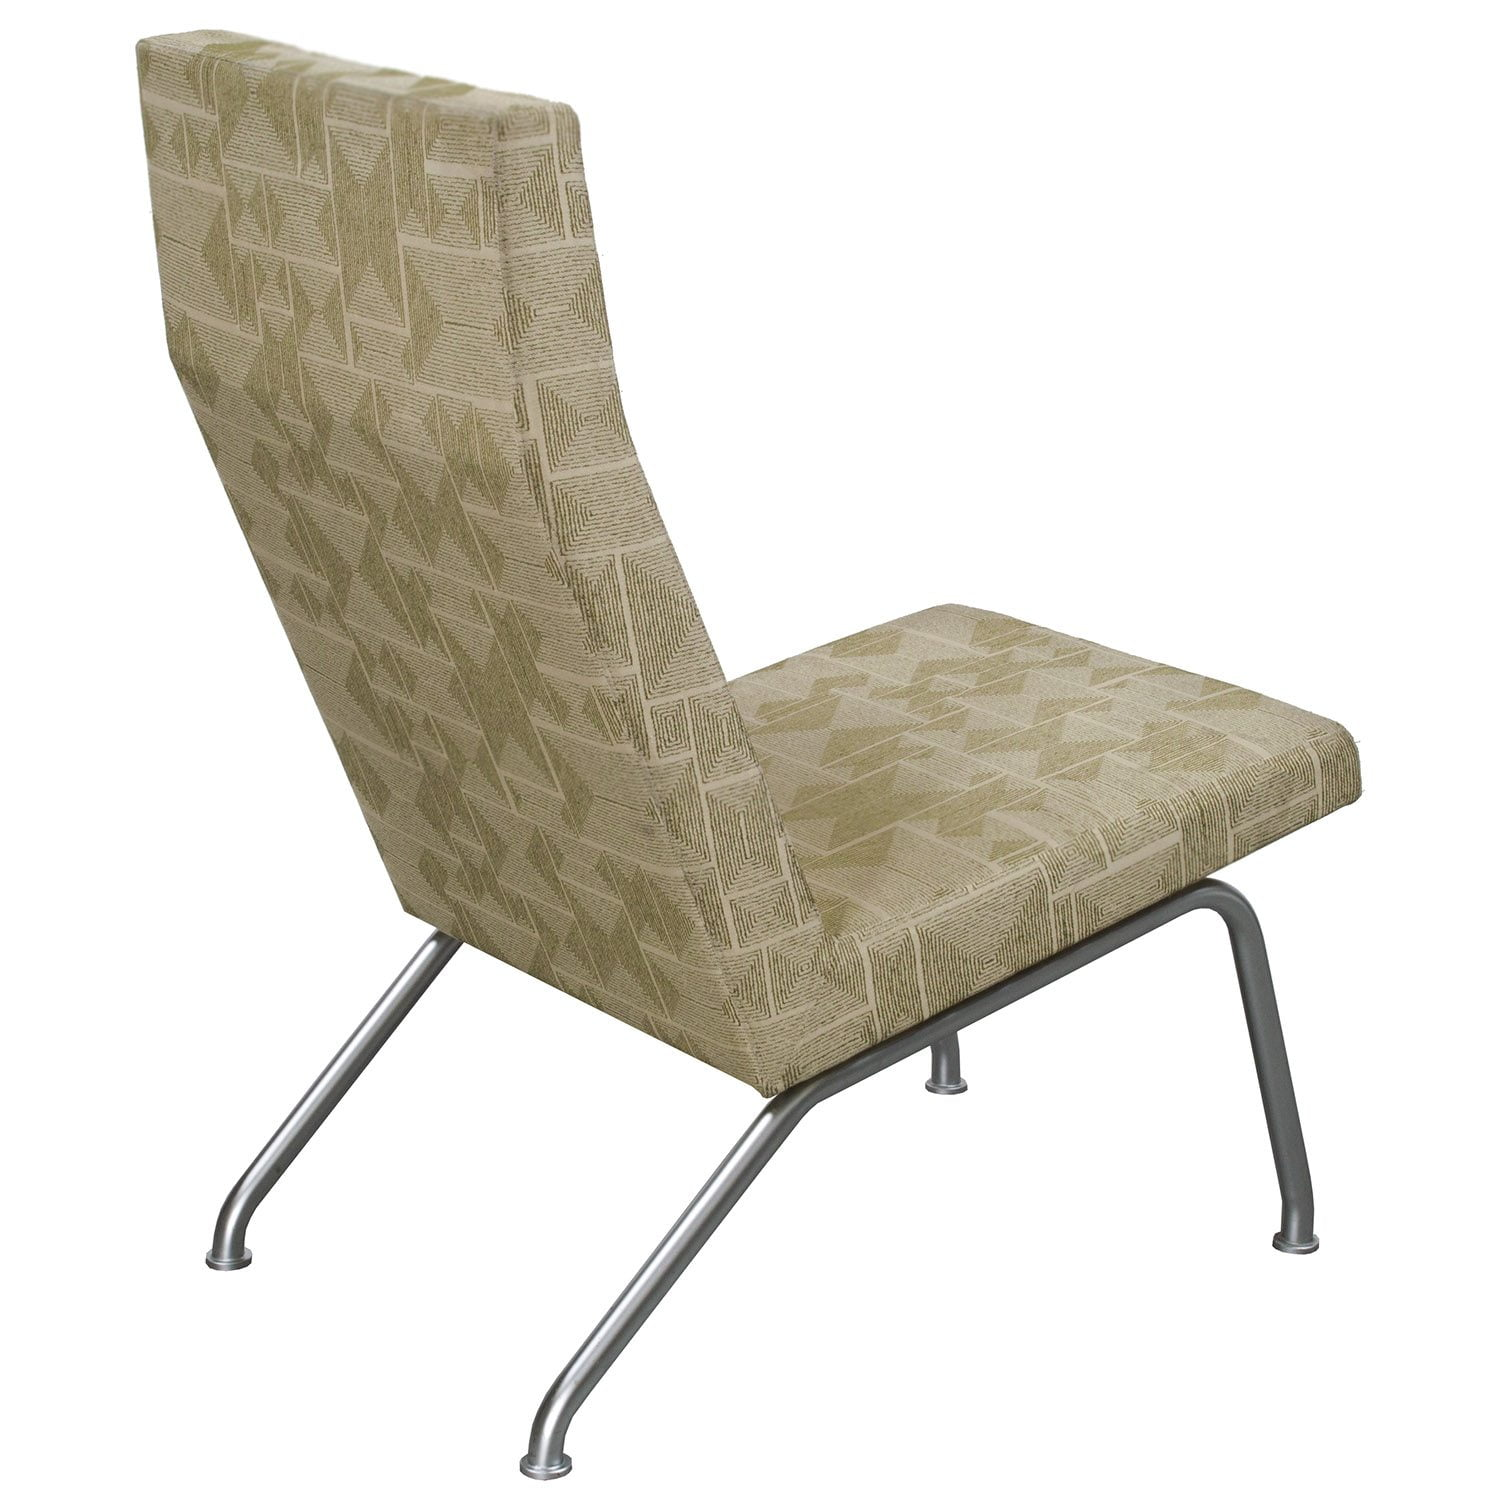 Patterned Chairs Lammhults Multiplicity Used Reception Chair Green